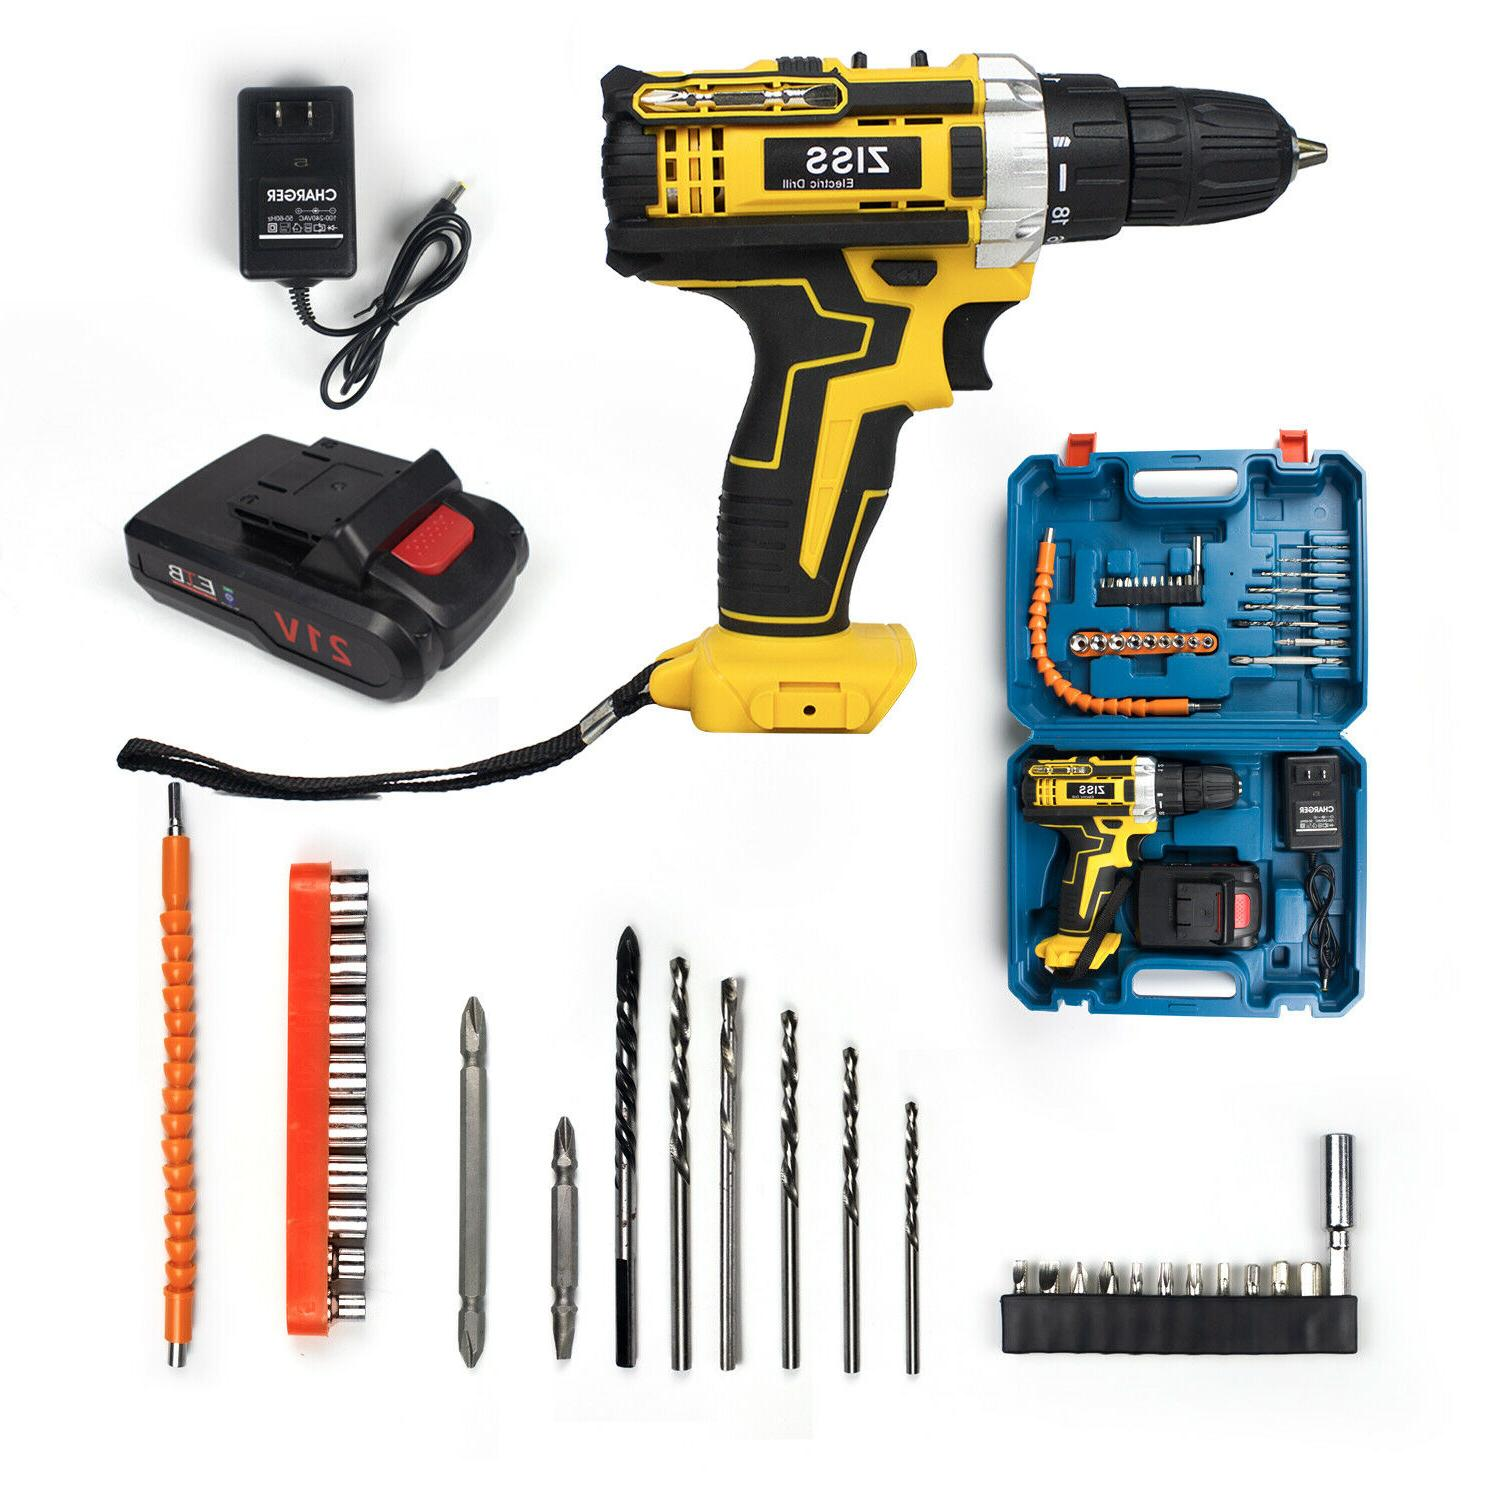 21-Volt Electric Cordless / Driver Set & Battery